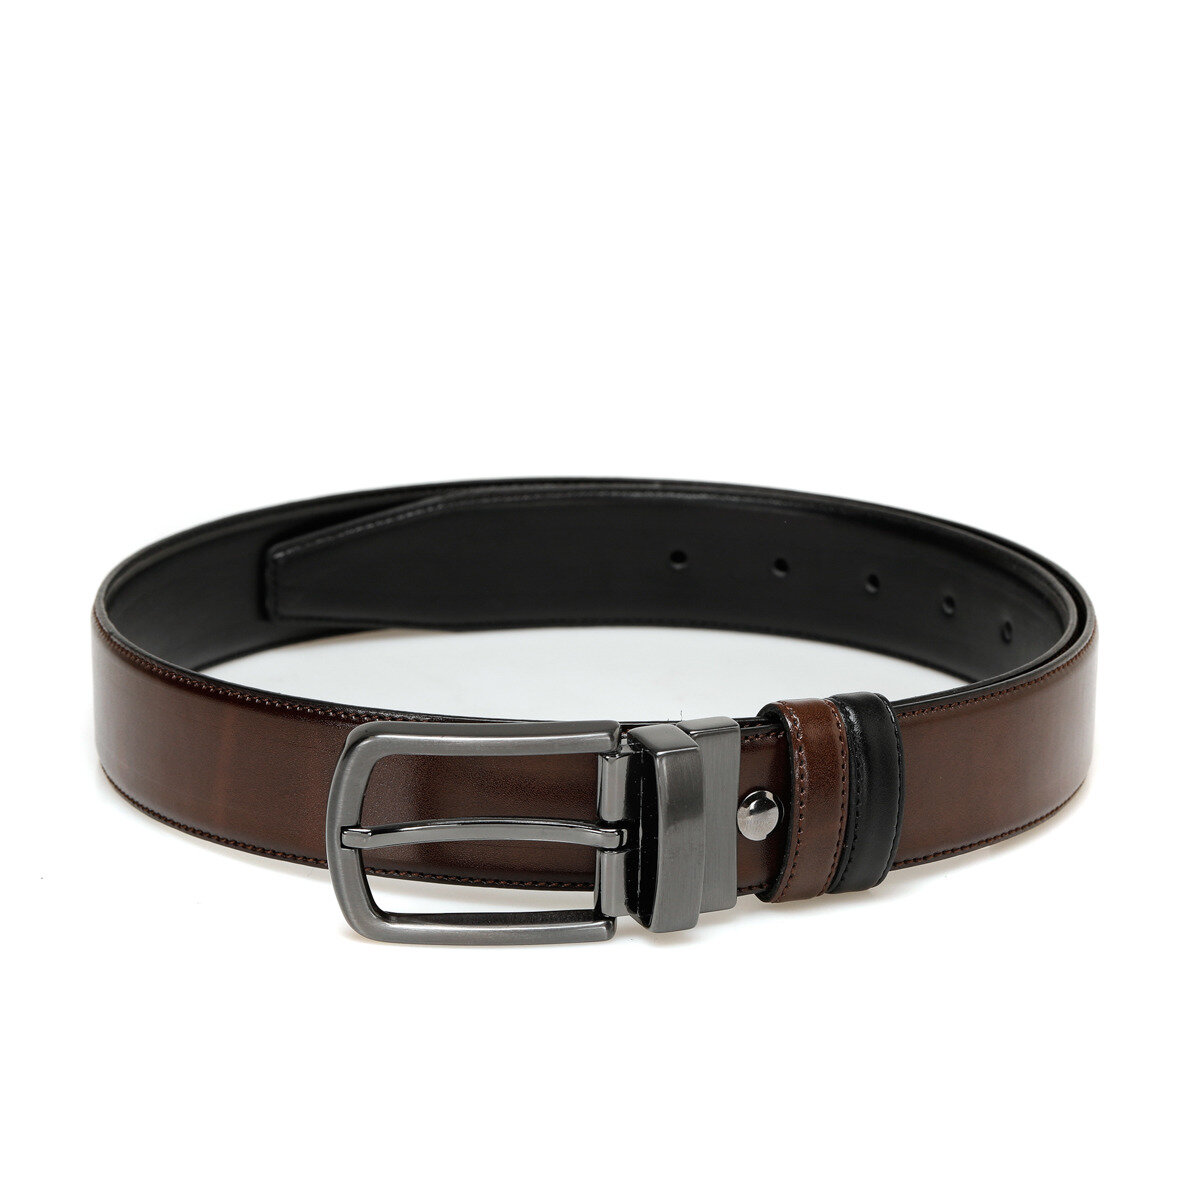 FLO 20M BR CFT Black Male Belt Garamond